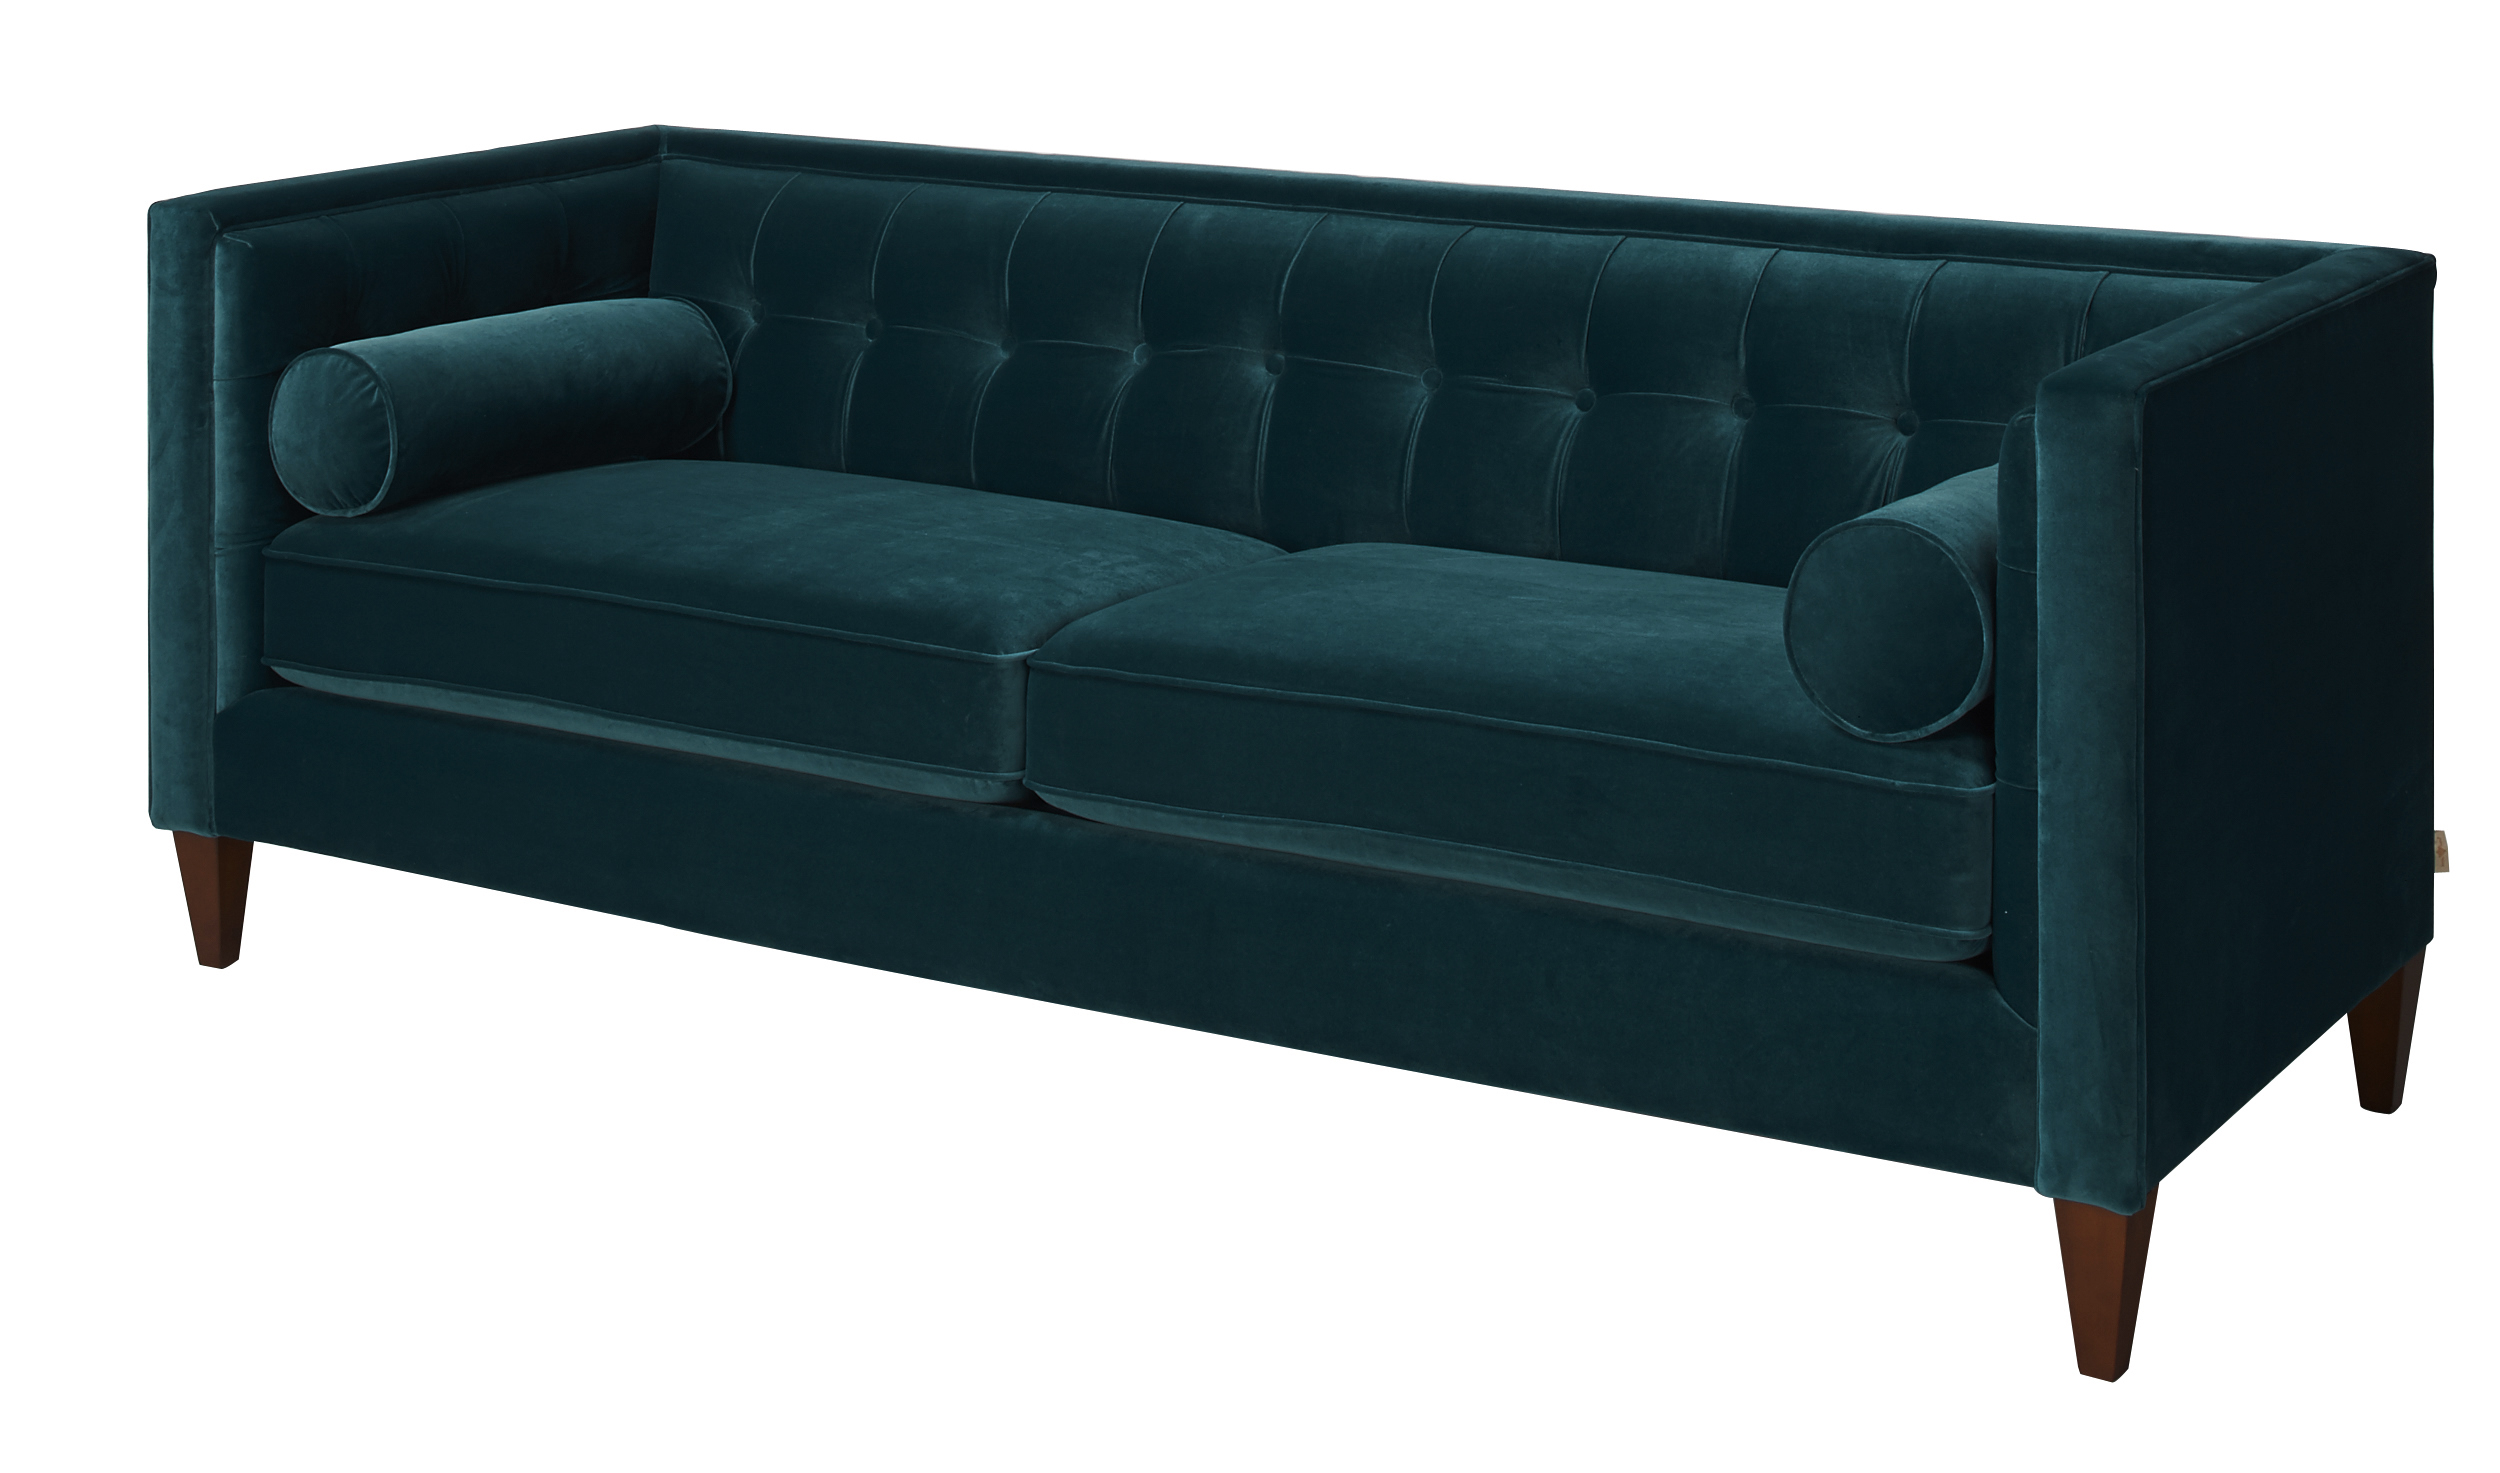 Chesterfield Sofa Velvet Fabric Fabric Wooden Chesterfield Velvet Sofa Satin Teal